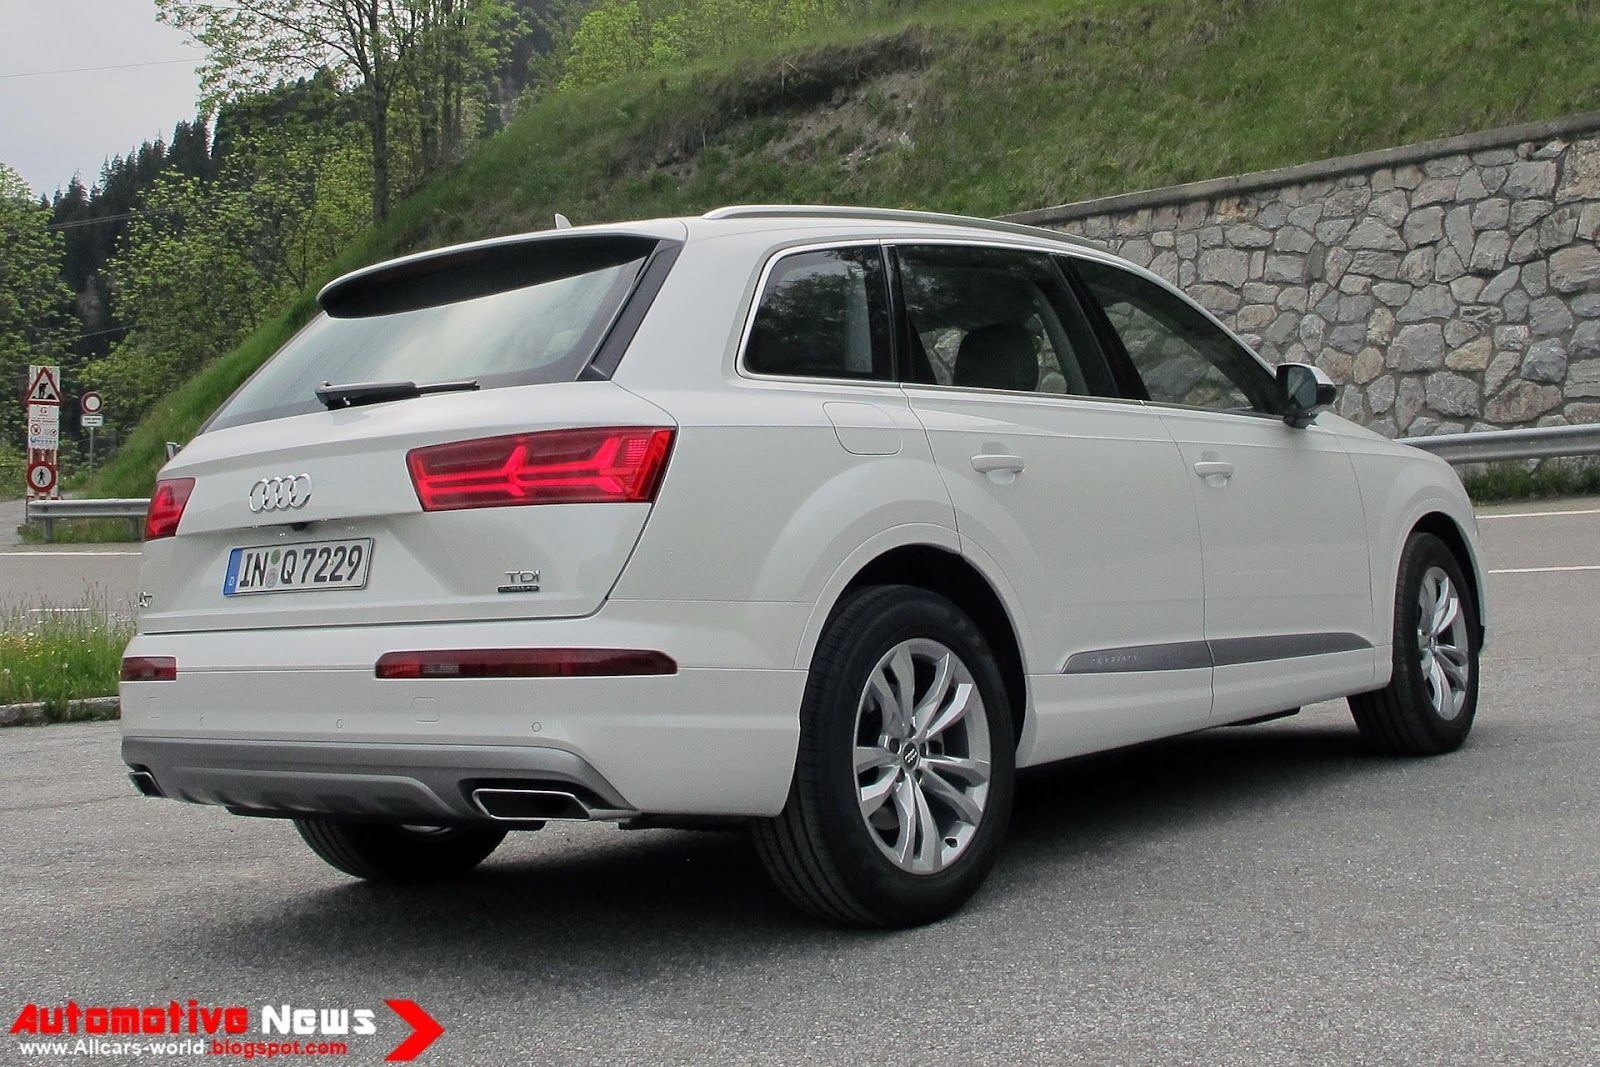 While the 2017 audi q7 appears at first blush to knock all of the basics of a luxury suv out of the park there s a whole other side to this audi it s